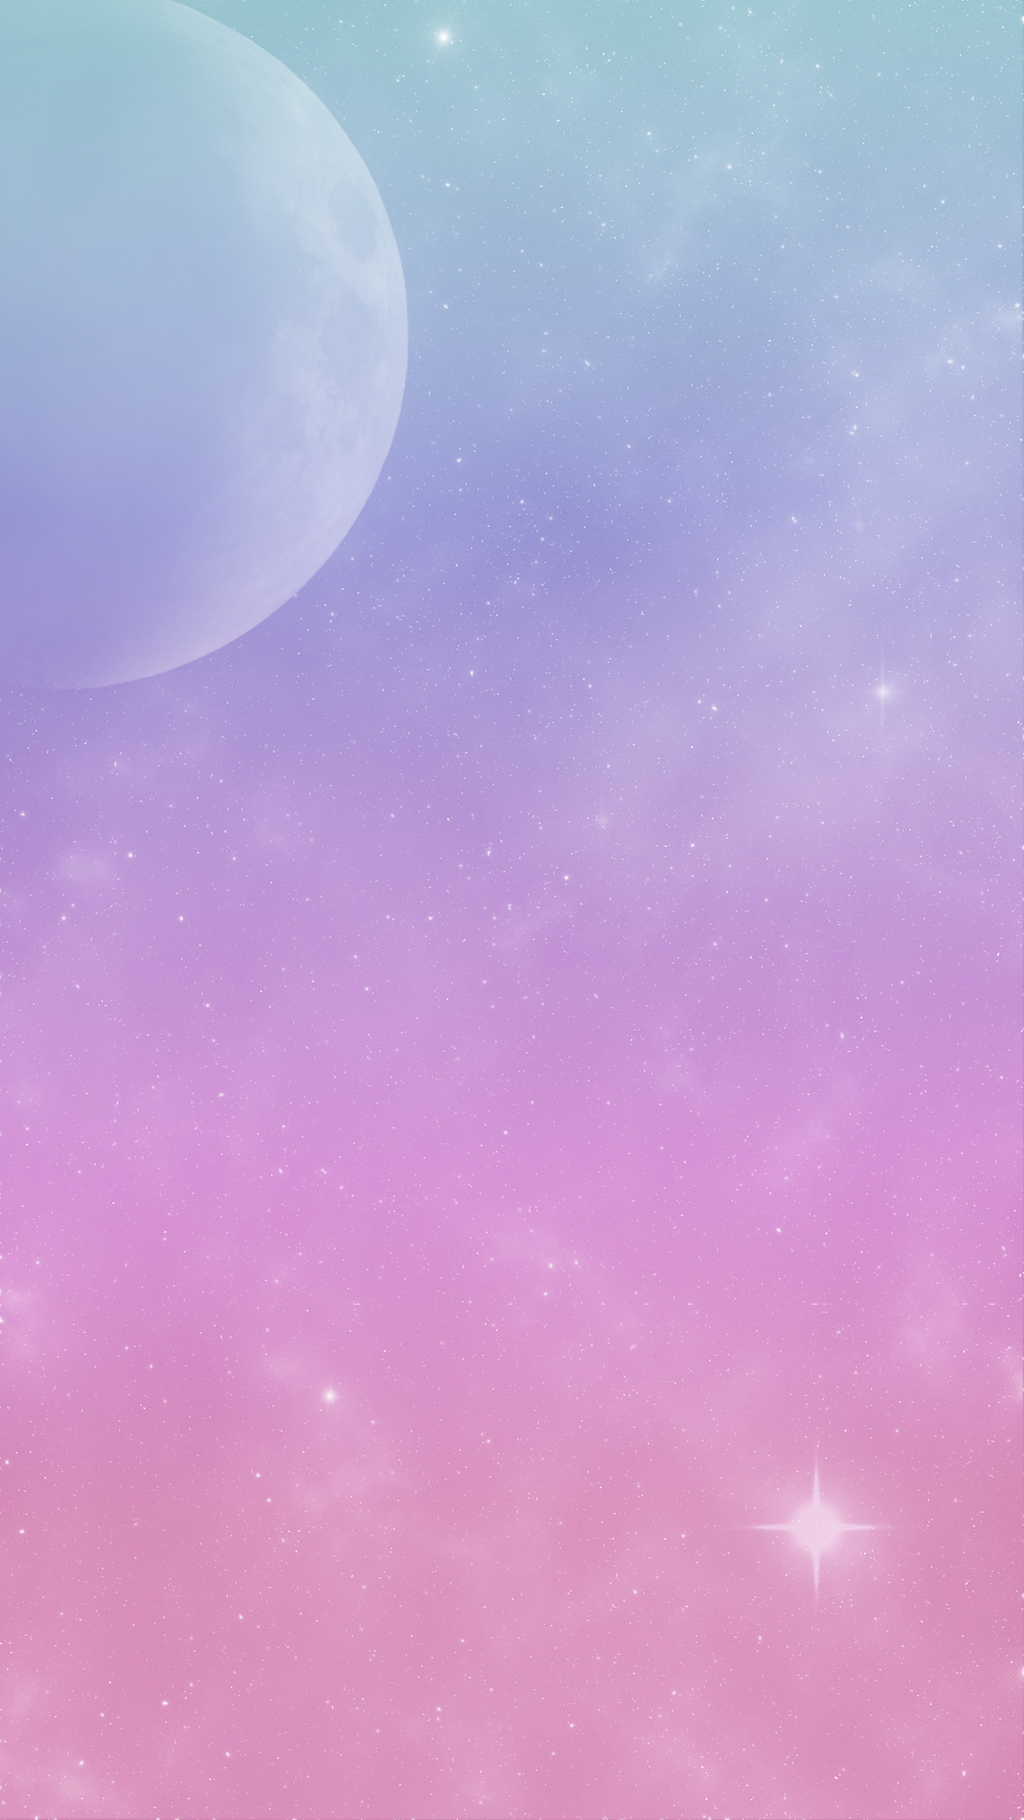 Galaxy Note 7 Pastel Sky Wallpaper by HarmoniousFusion